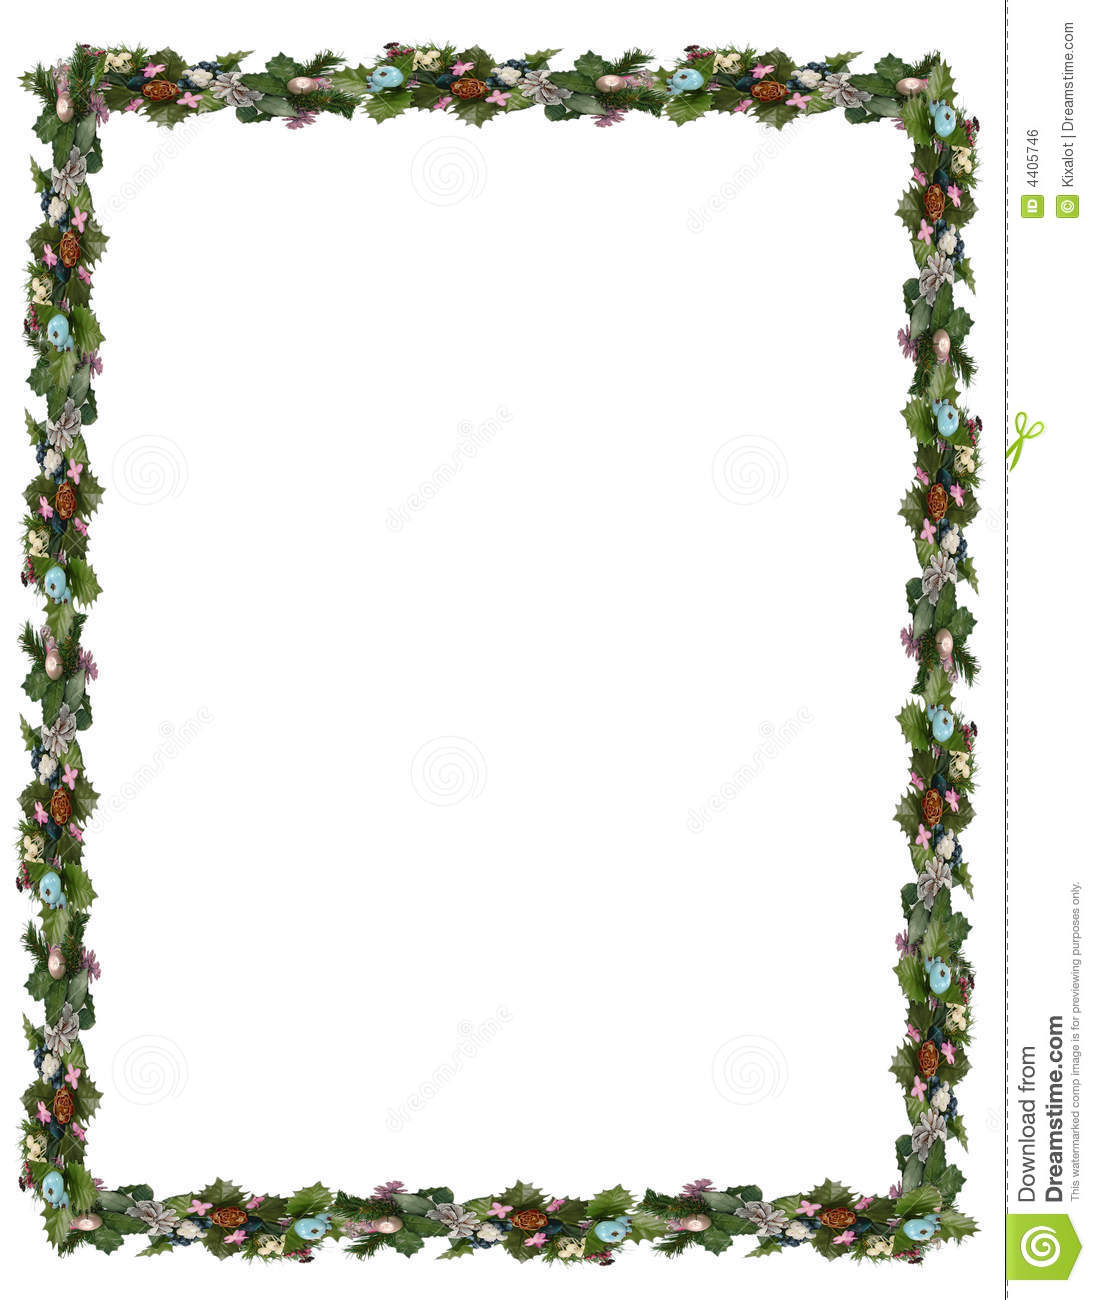 Christmas Borders For Word Documents Free Download Best